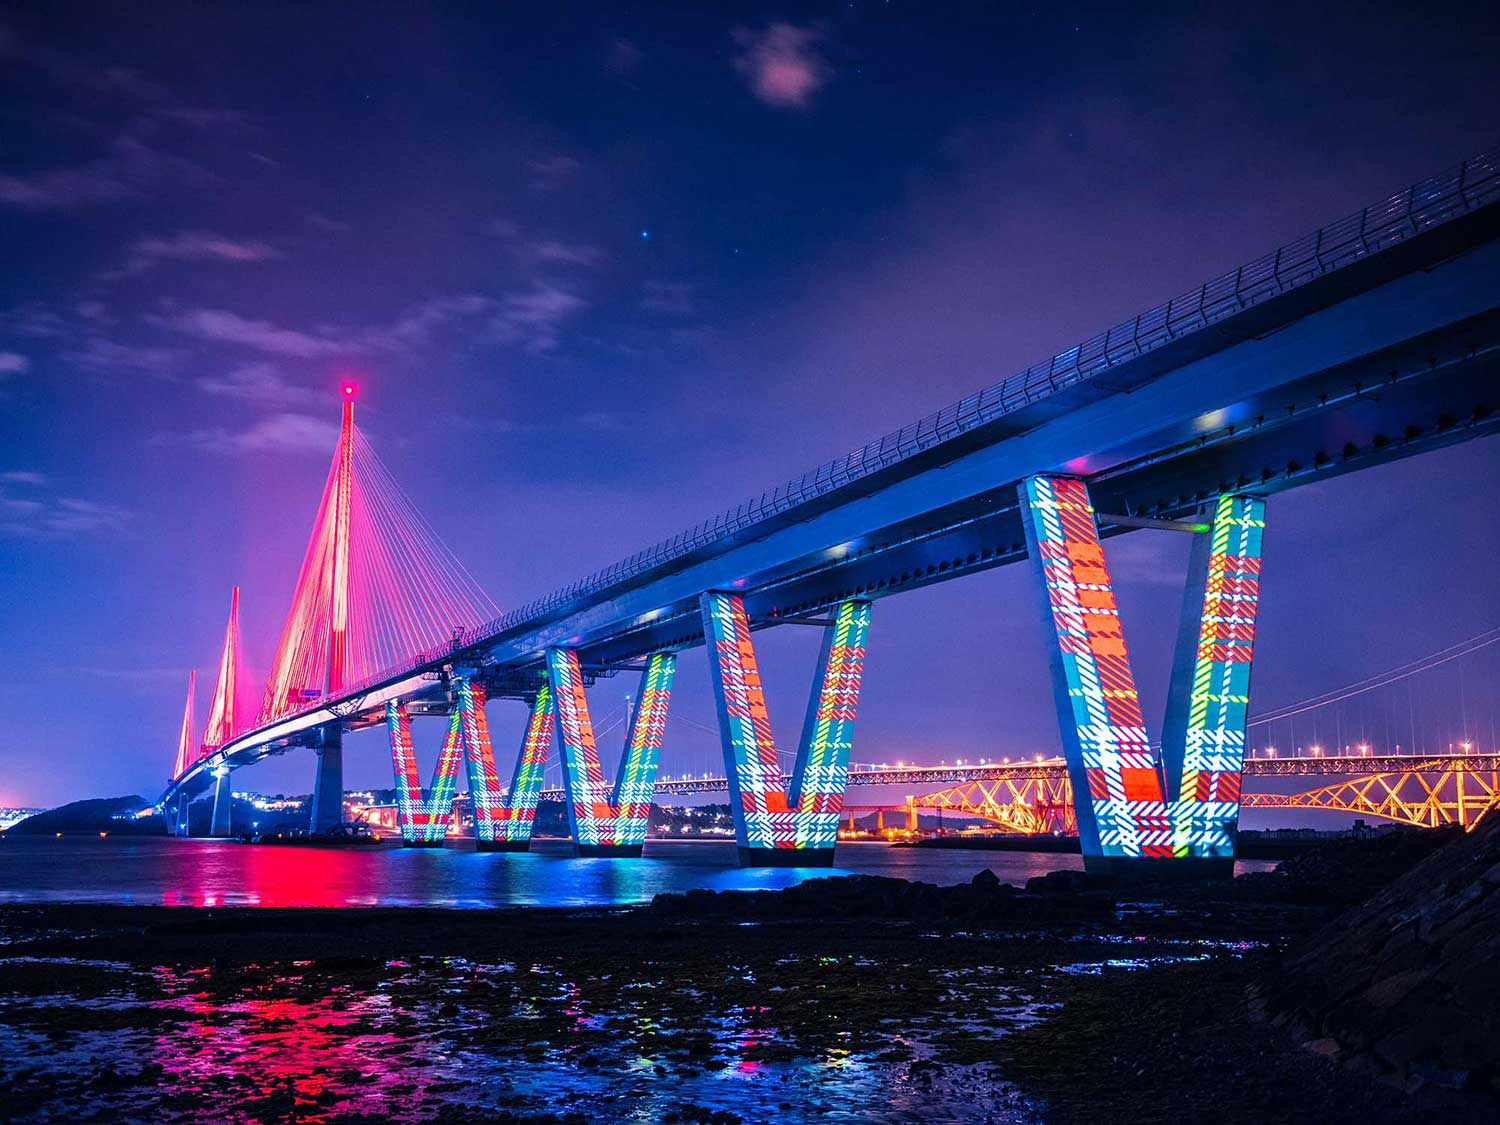 Queensferry Crossing Launch Projection mapping, under bridge